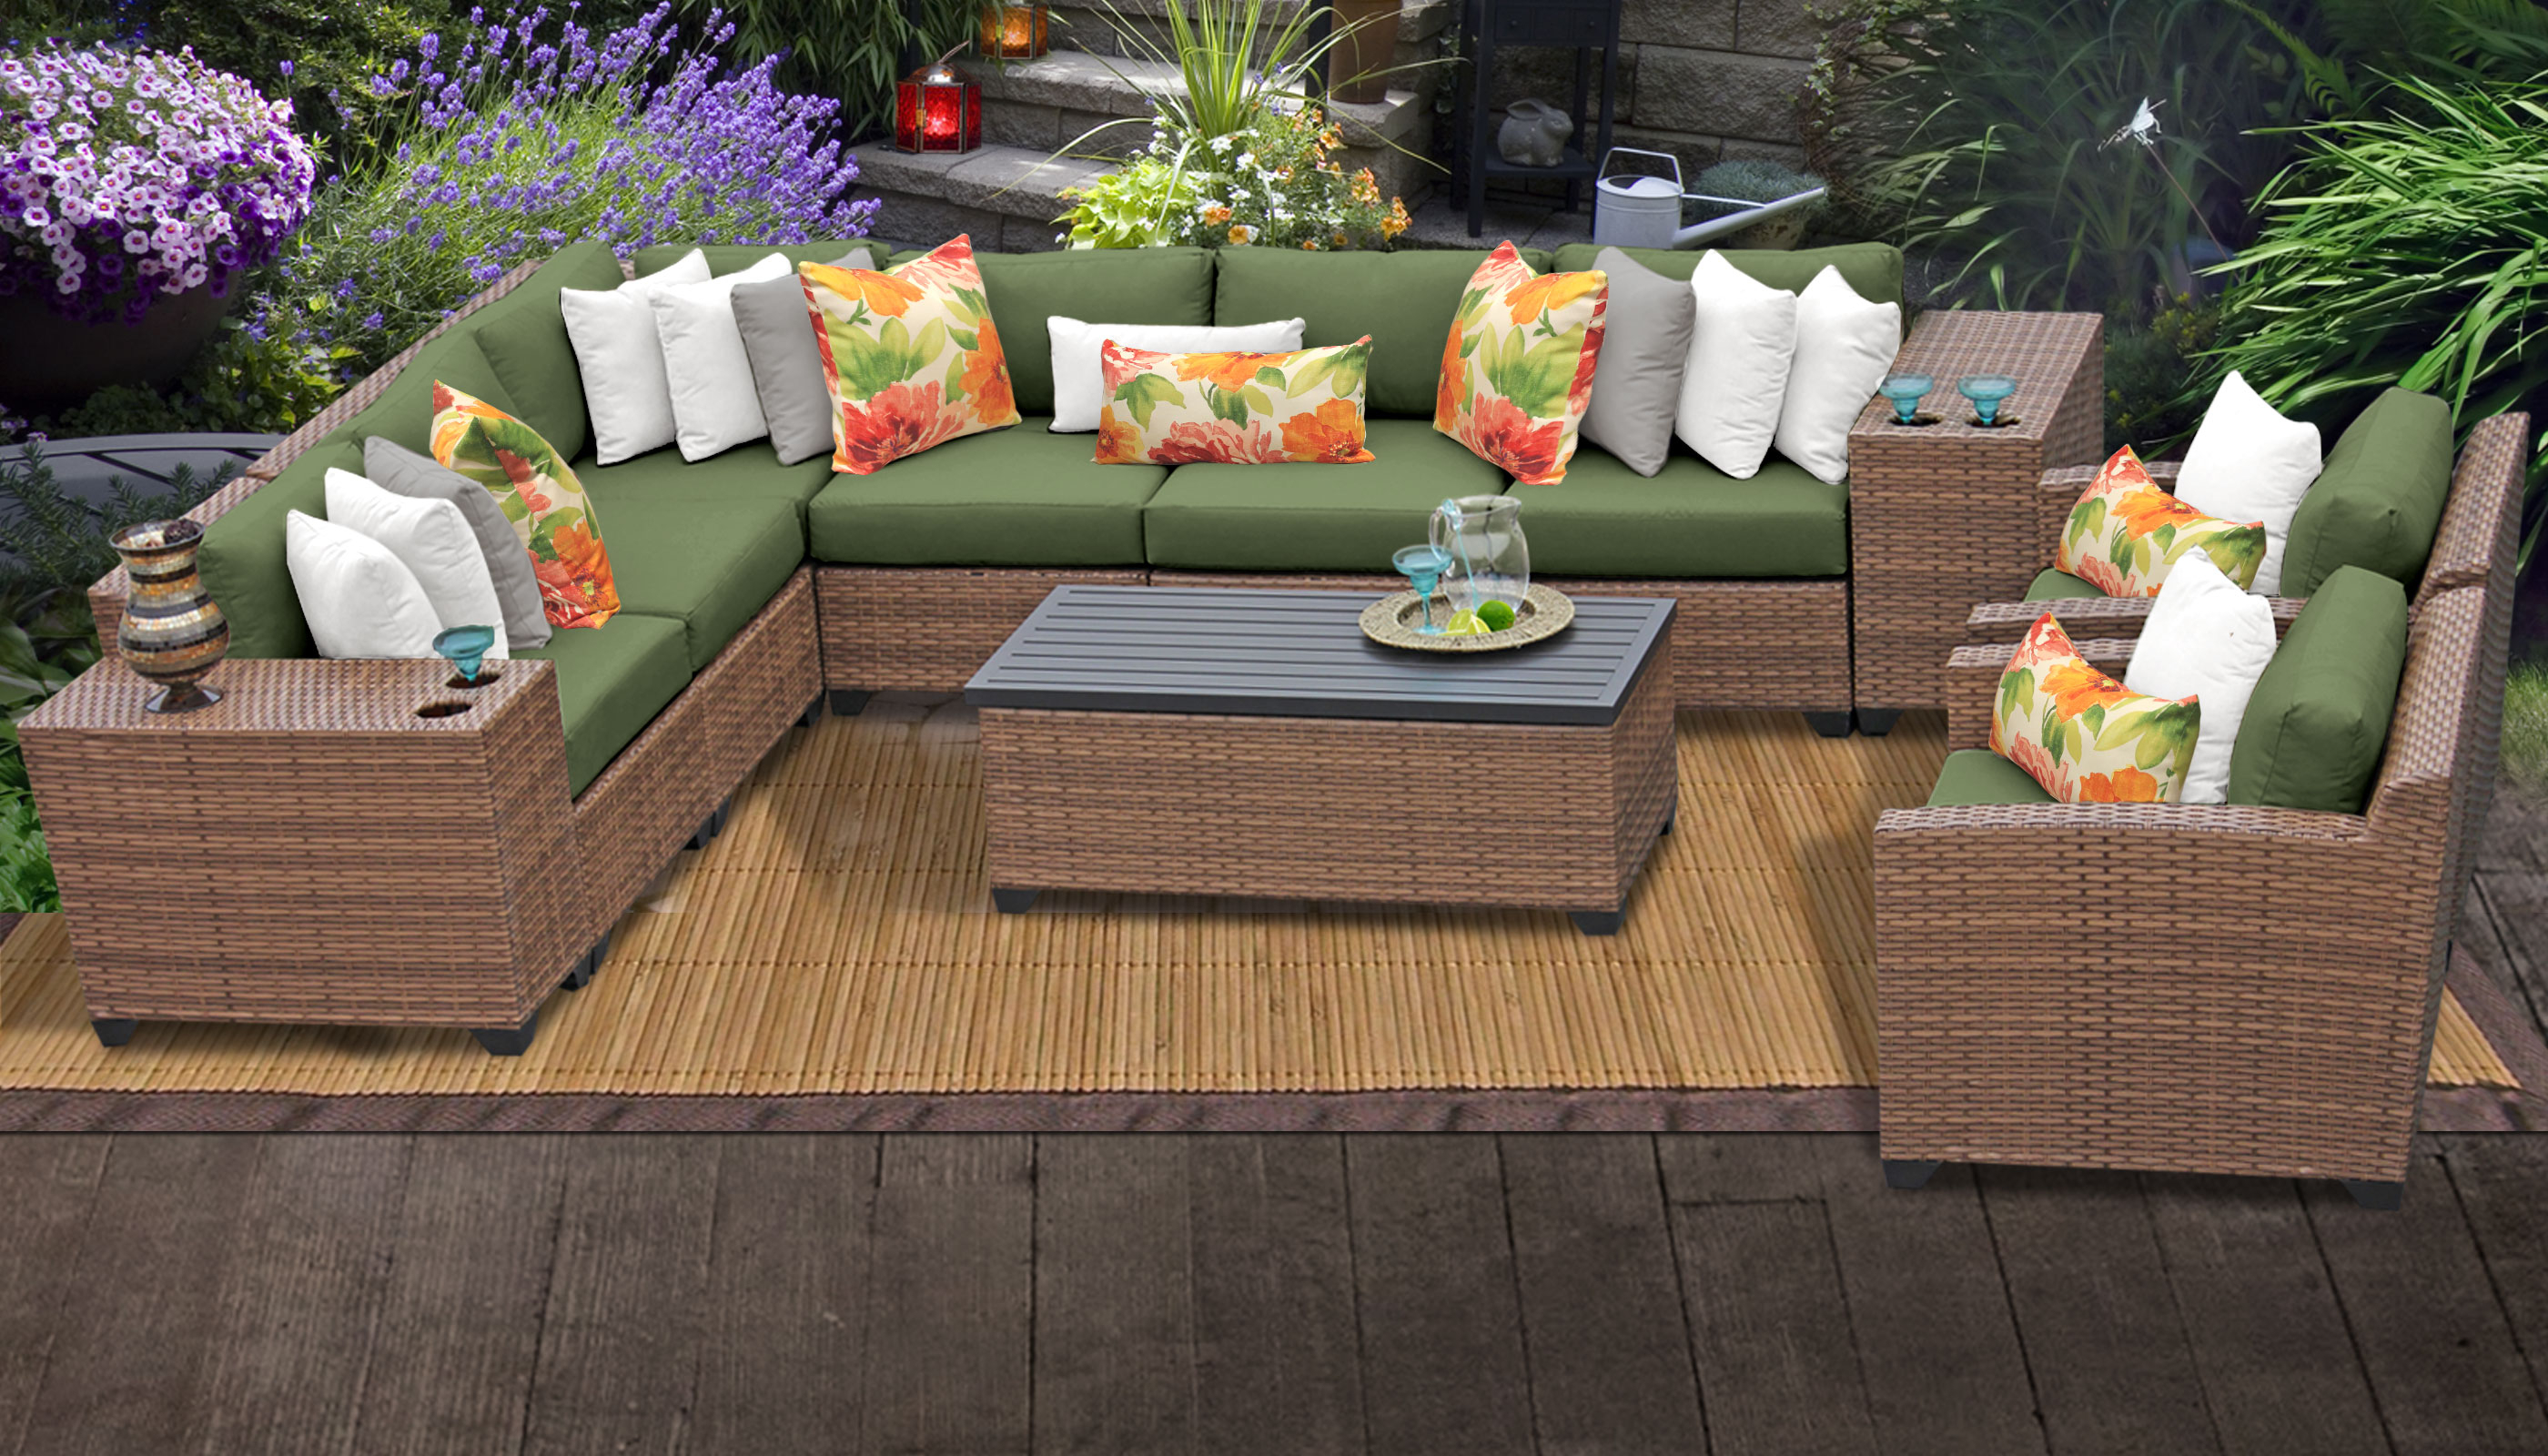 Laguna Outdoor Sofas With Cushions Within Favorite Laguna 11 Piece Outdoor Wicker Patio Furniture Set 11D (View 10 of 20)